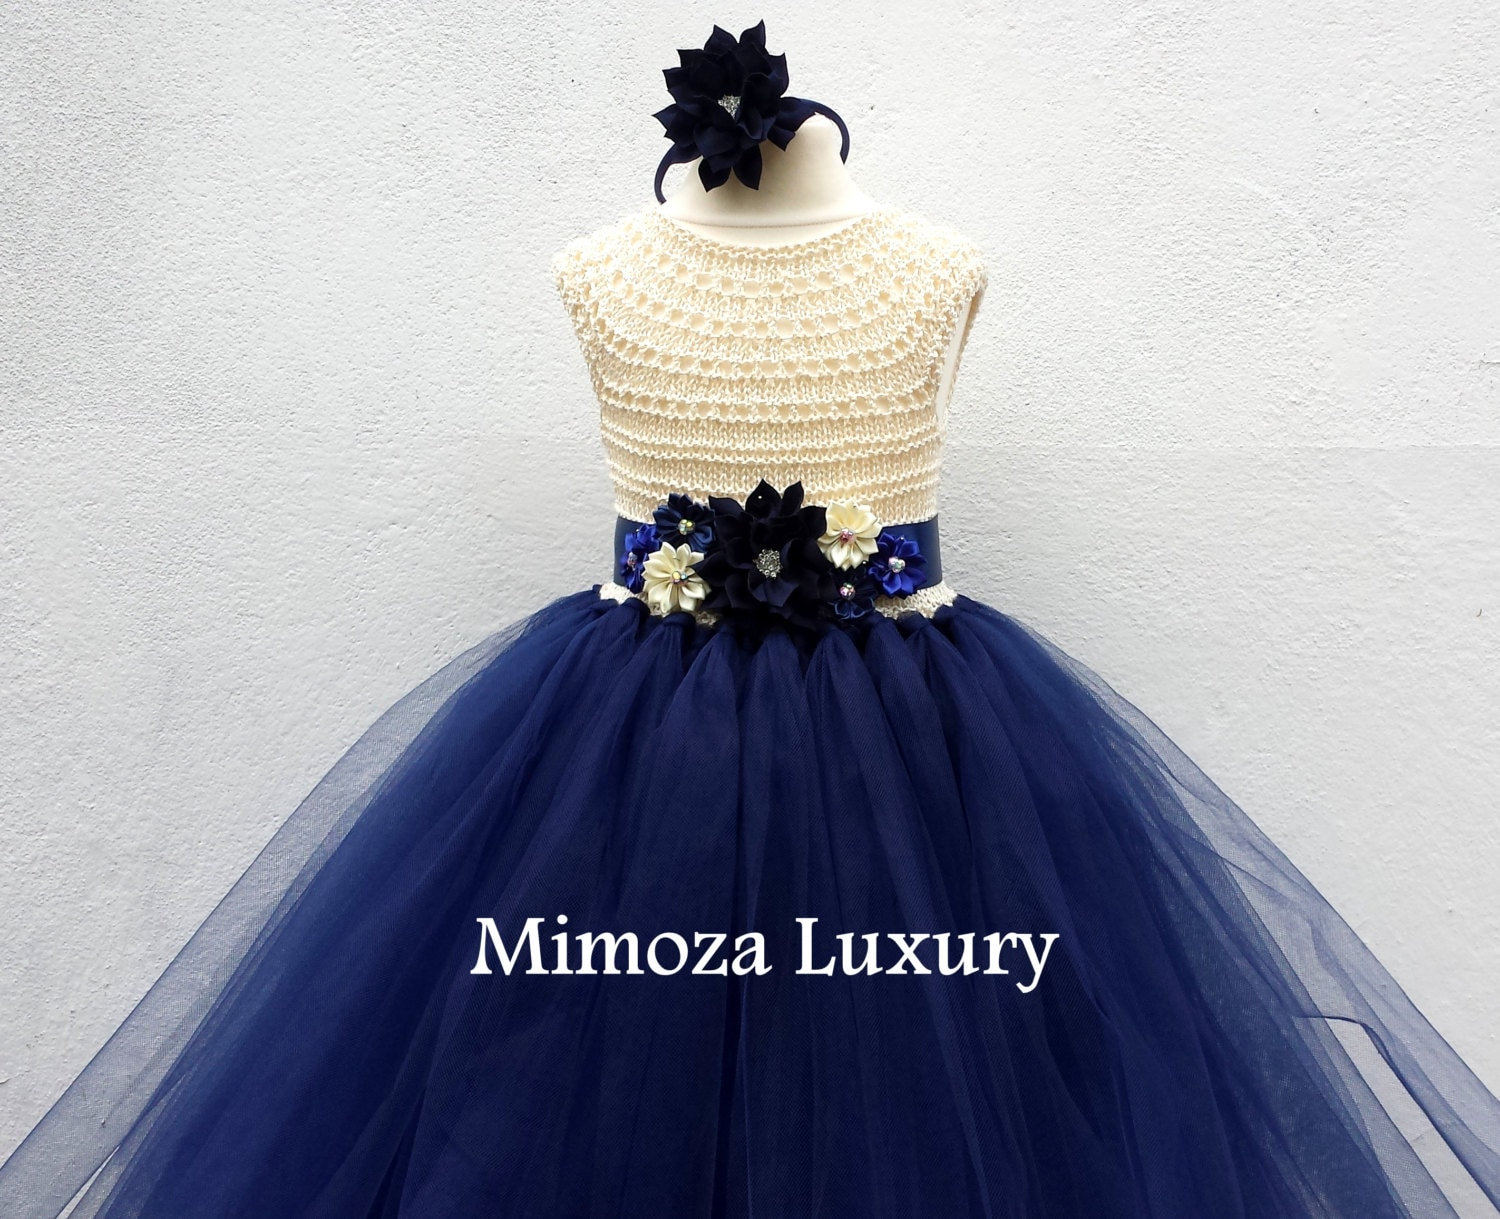 Ivory navy flower girl dress ivory and navy tutu dress navy cream ivory navy flower girl dress ivory and navy tutu dress navy cream bridesmaid dress cream navy blue princess dress ivory navy wedding izmirmasajfo